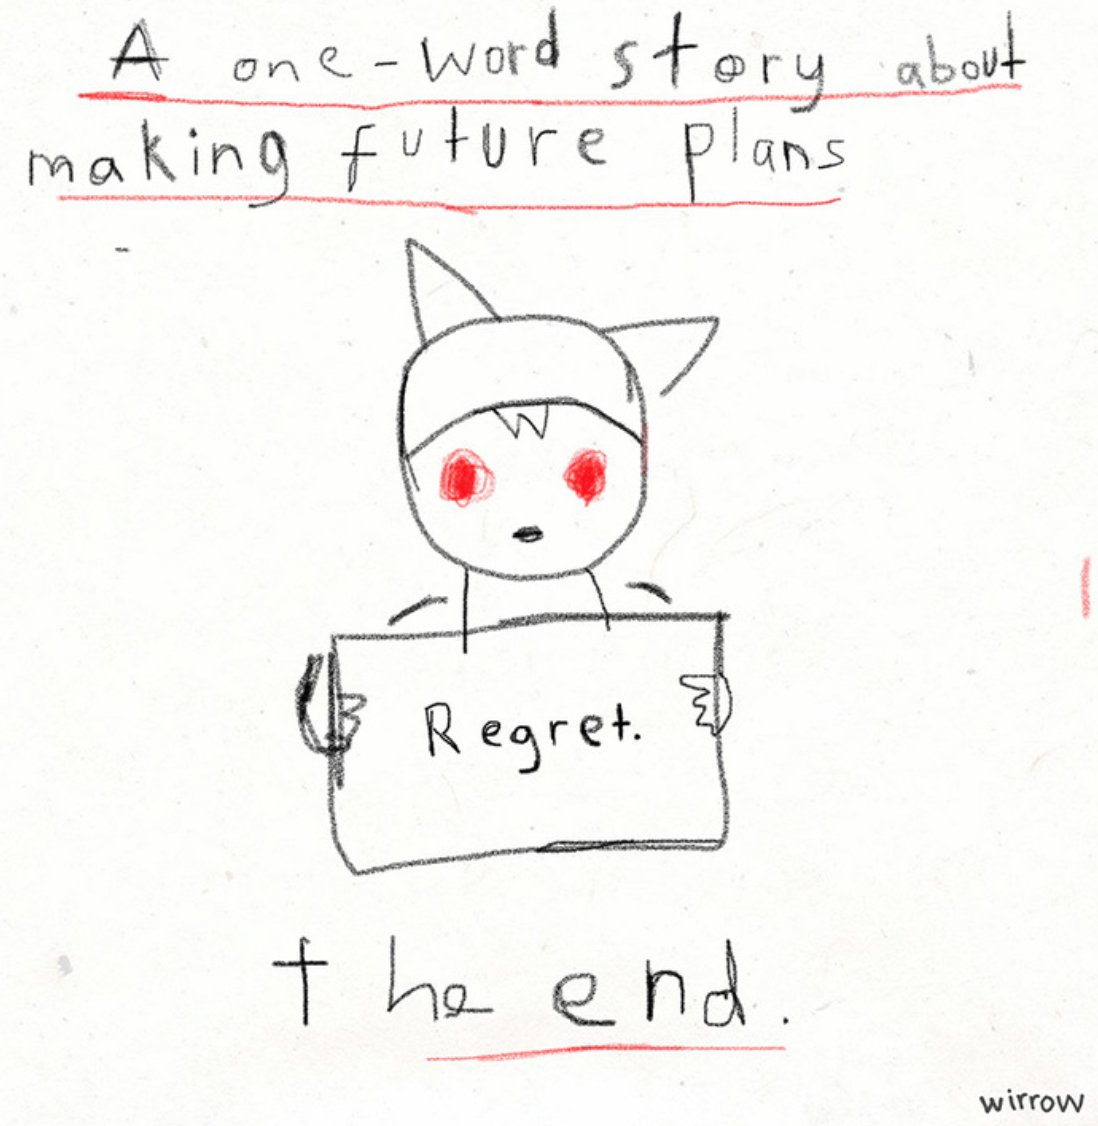 A one word story from an existentialist toddler... https://t.co/KyizLd1oL3 https://t.co/Jx98hMOS4w